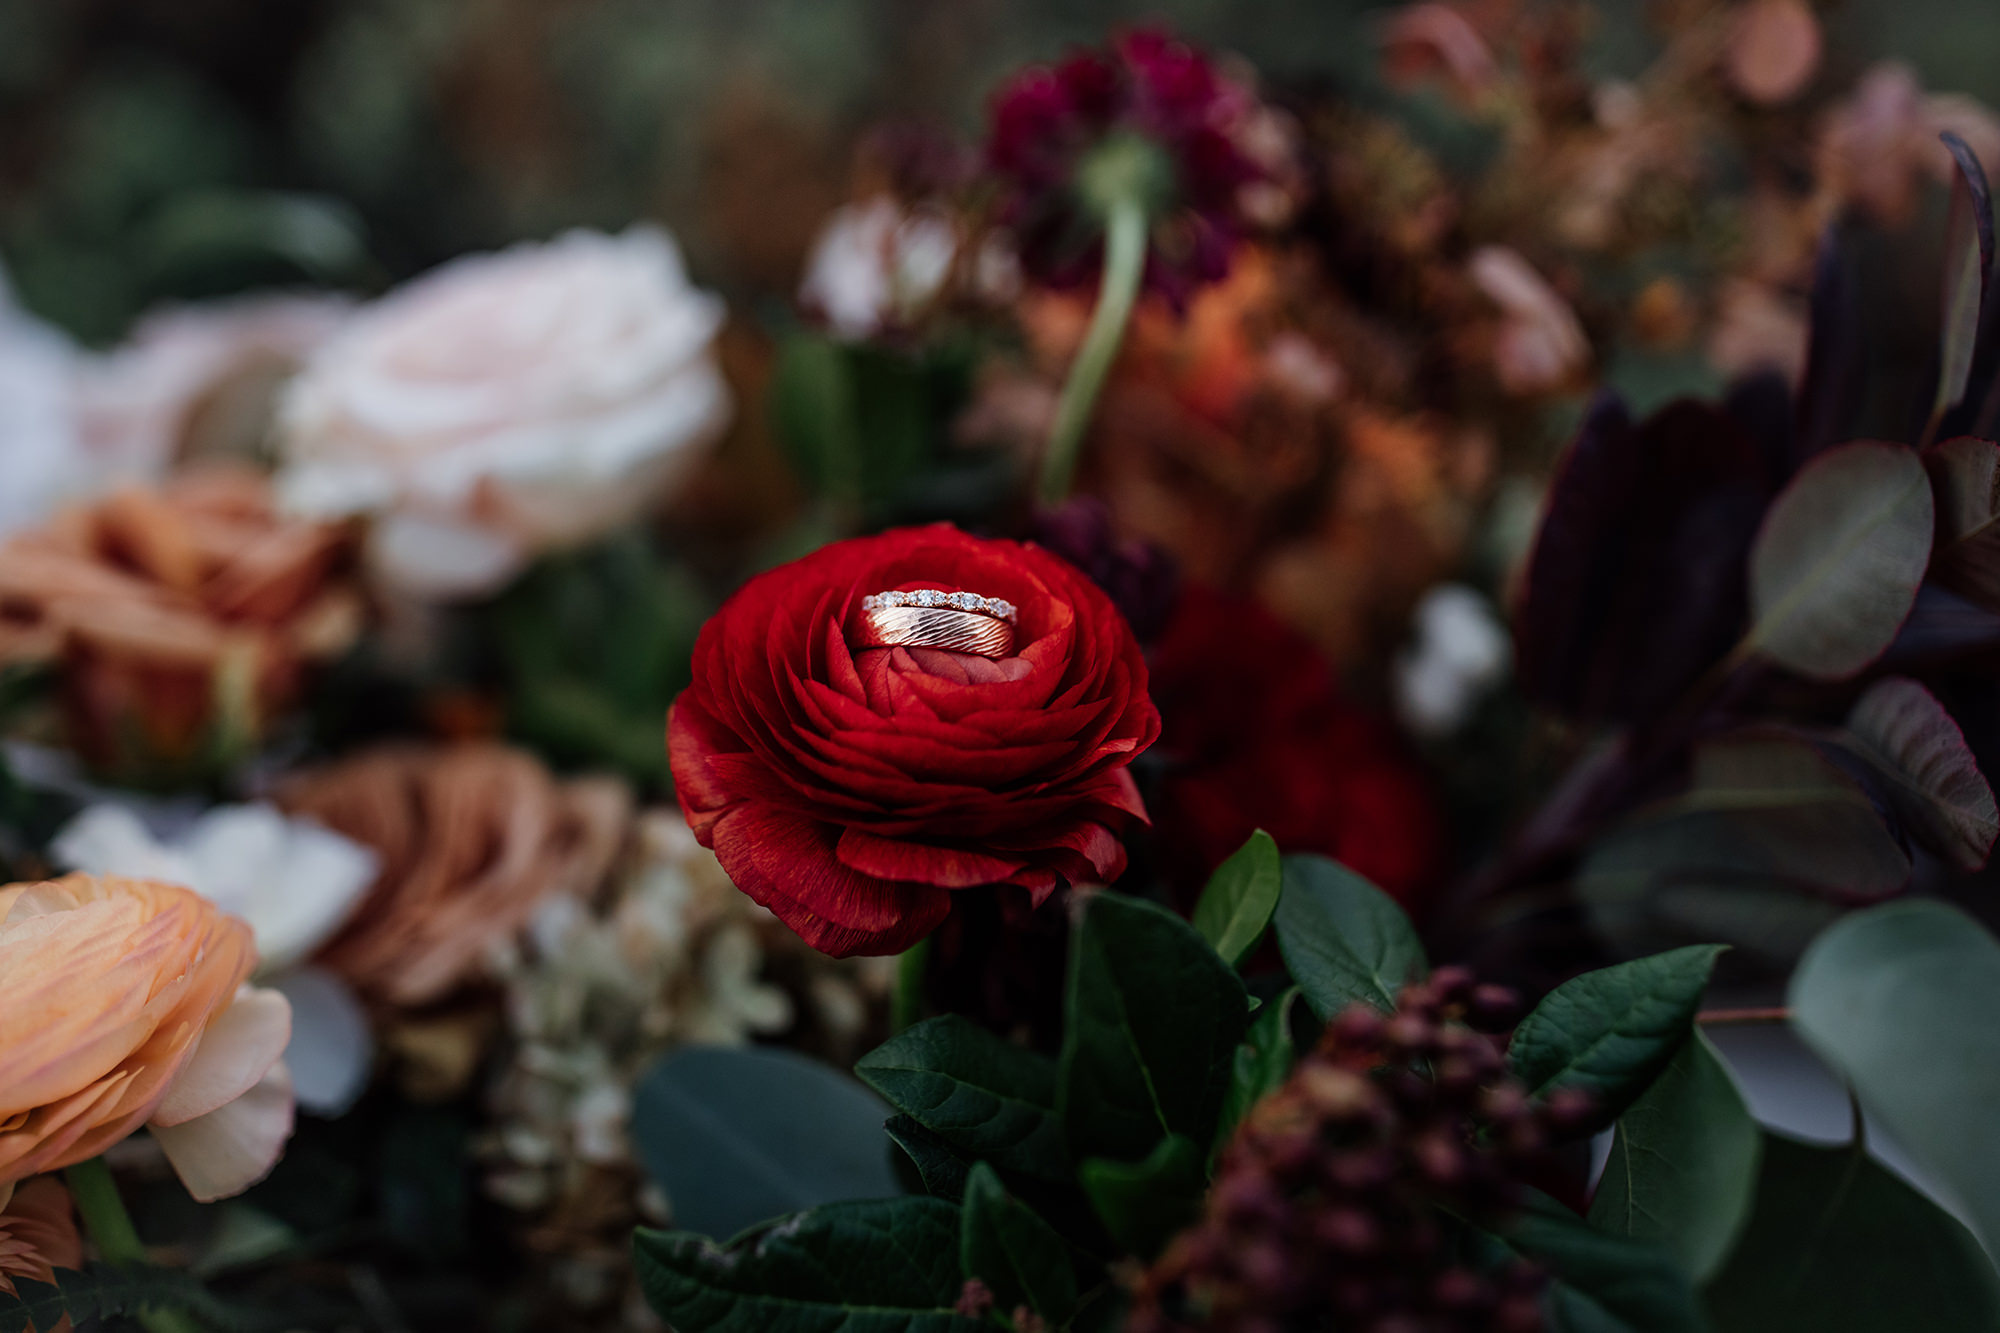 Wedding rings in beautiful bouquet at Nap Valley wedding.